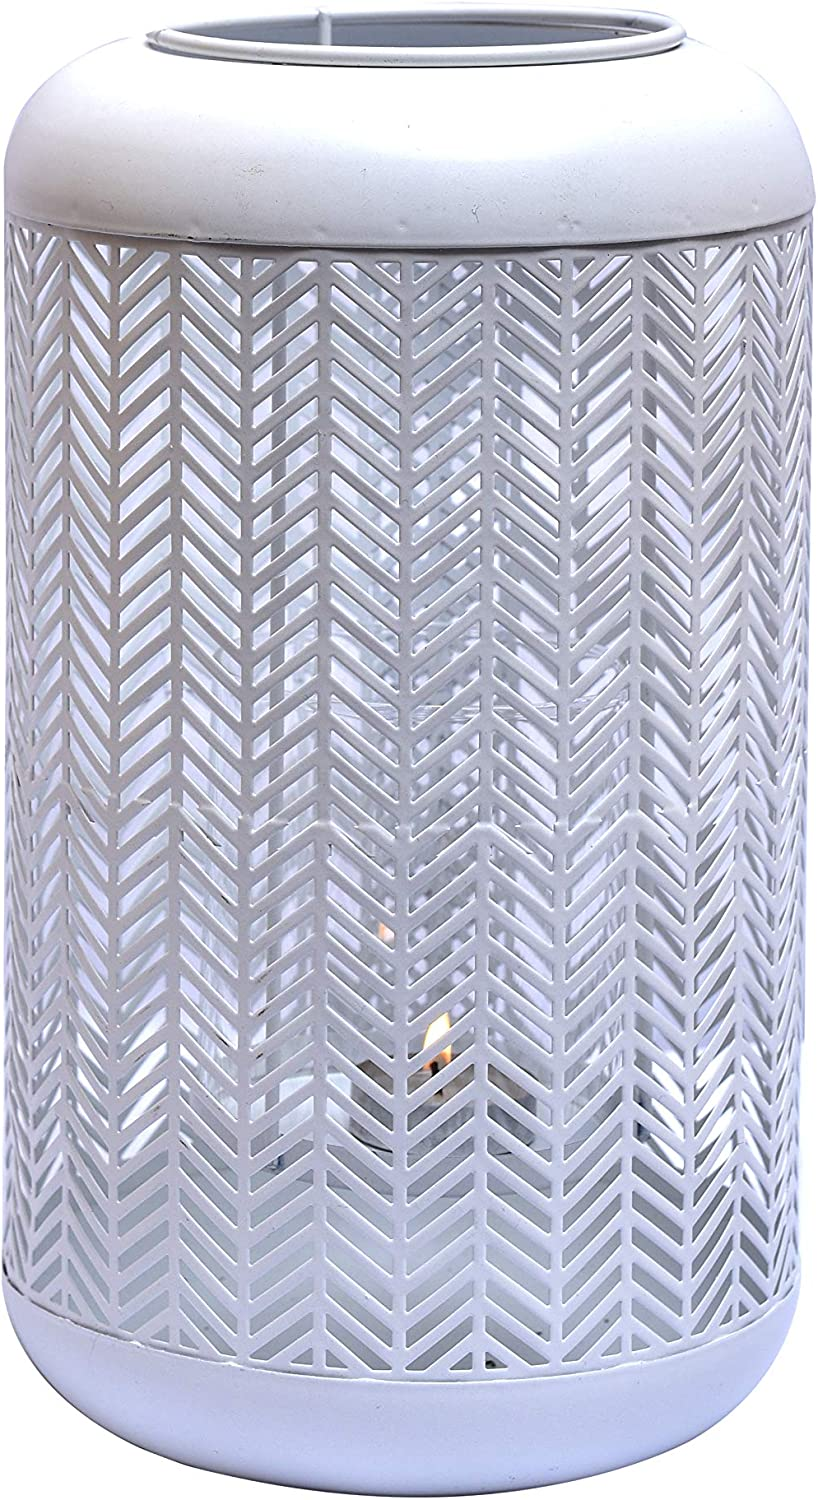 Decozen Lantern for Home Décor White with Glass Candle Holder Lattice Pattern for Indoor Outdoor Patio 6.30 x 6.30 x 11.02 inches